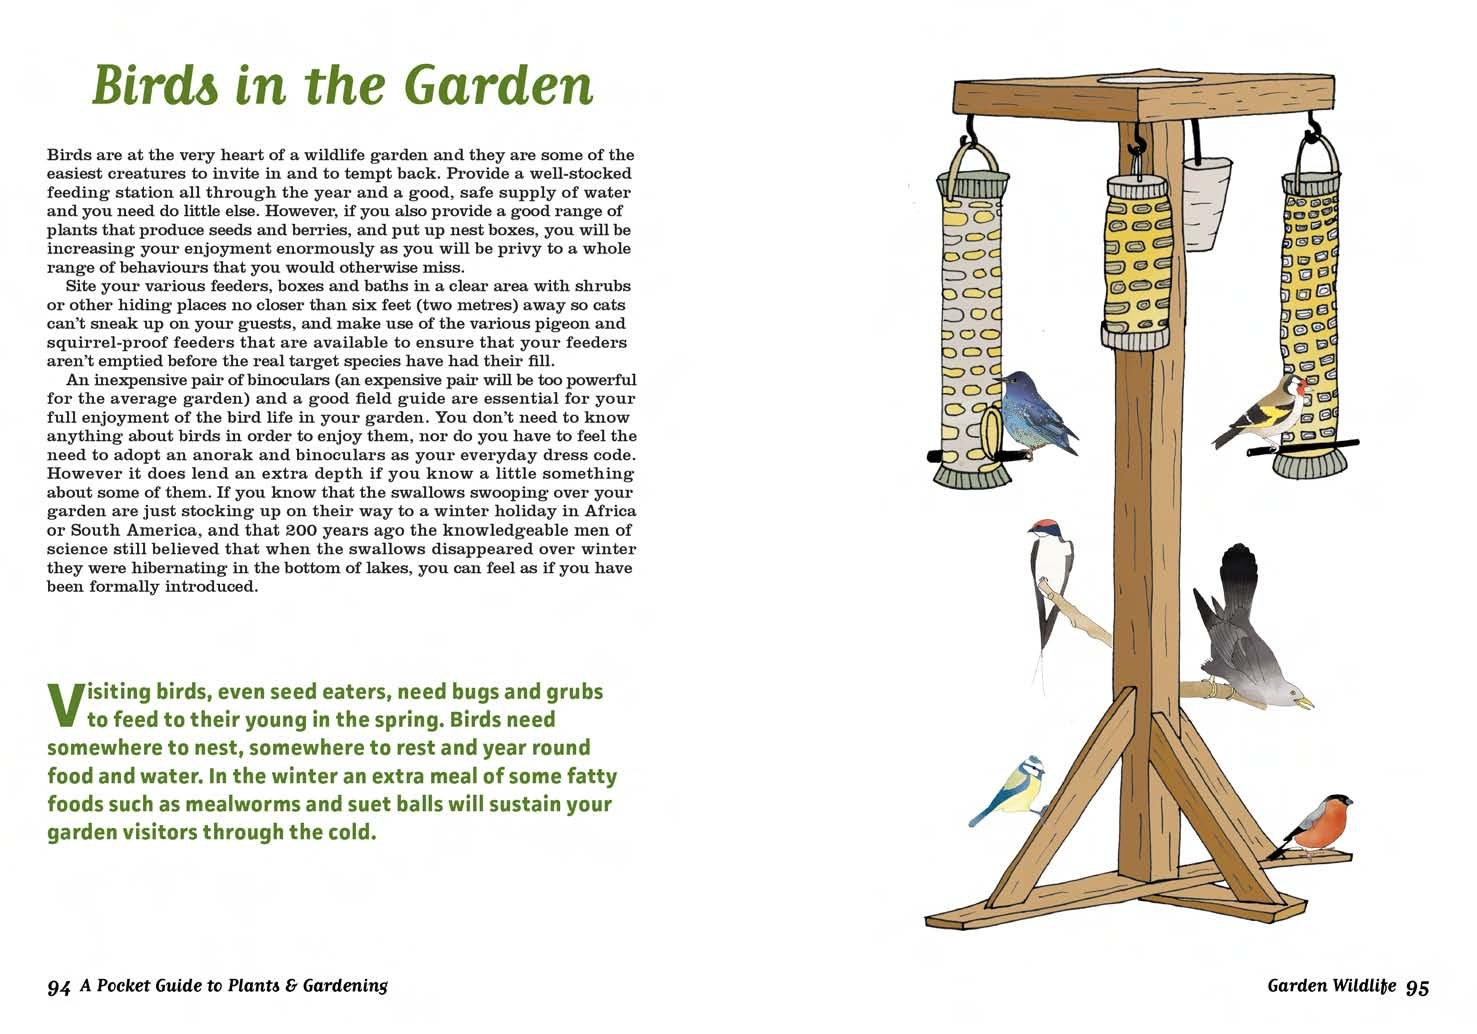 a pocket guide to plants and gardening elizabeth mccorquodale